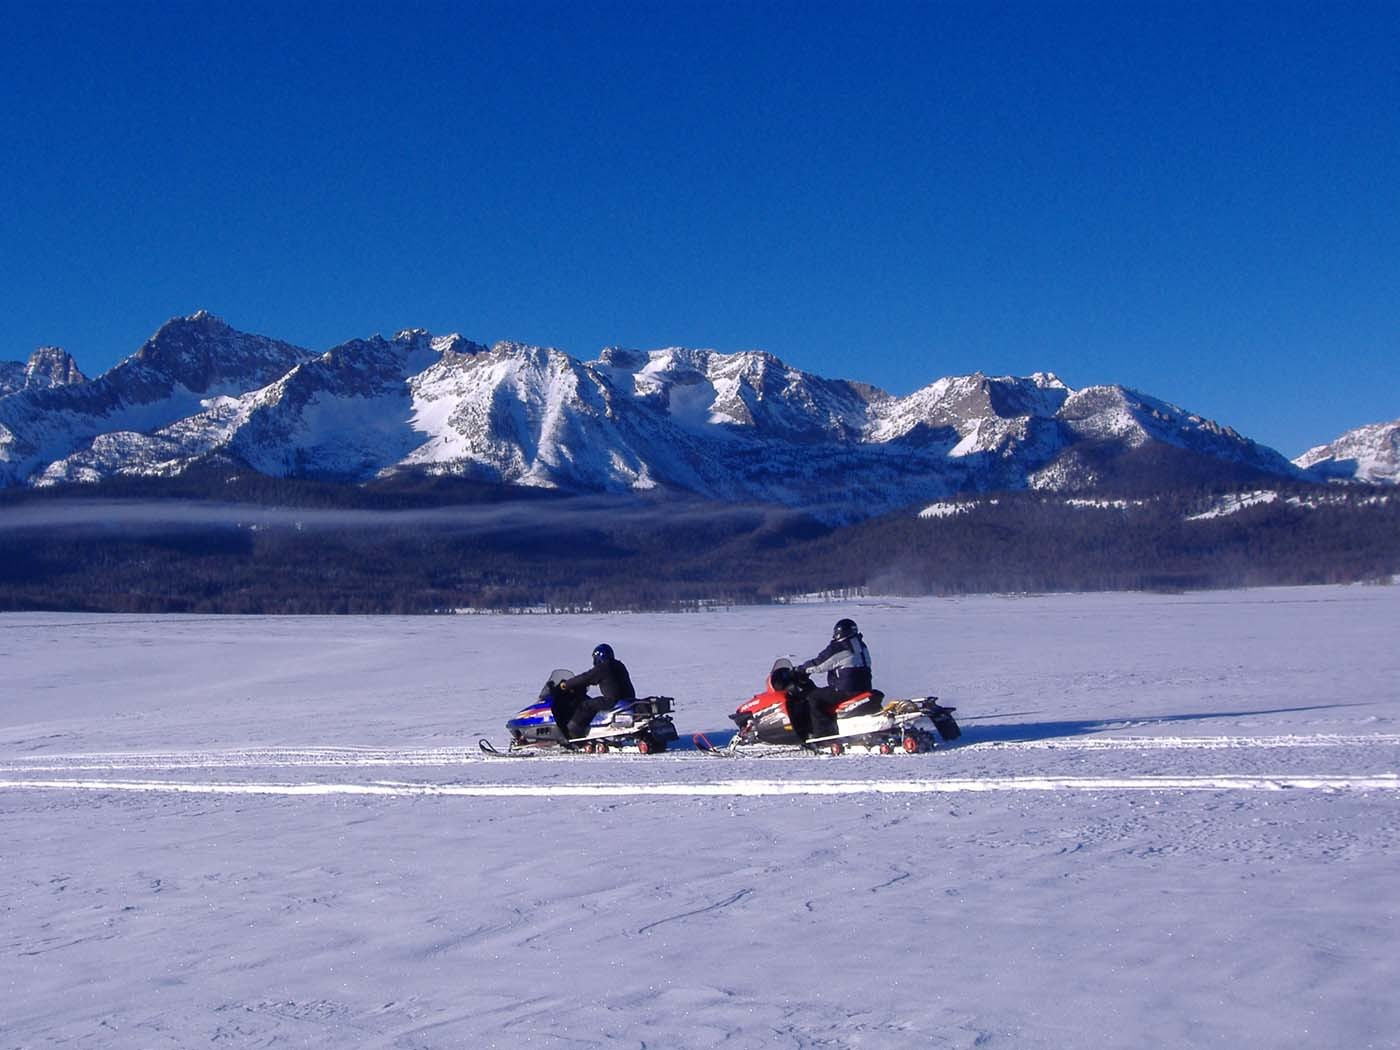 Two snowmobilers travelling on a snow covered trail with trees and mountains in the background.